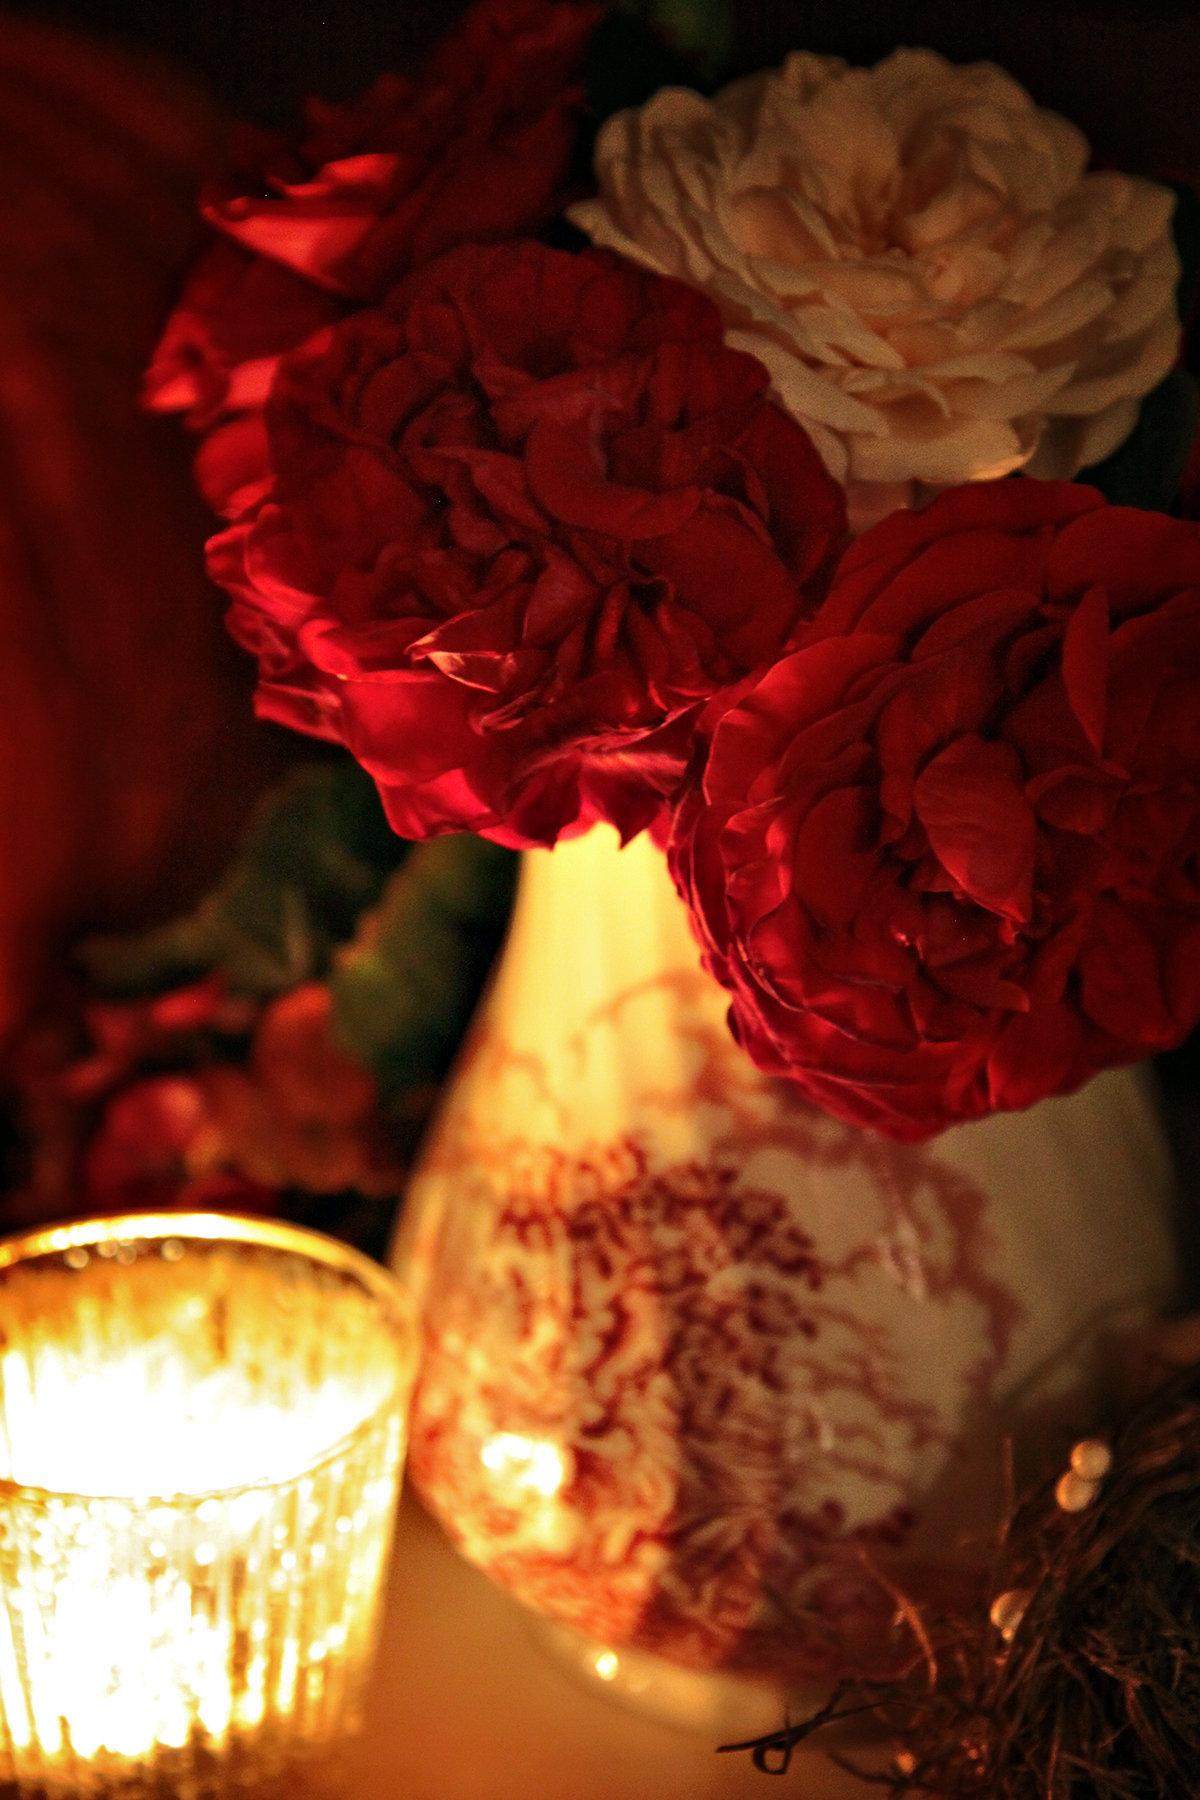 Roses and candlelight v2